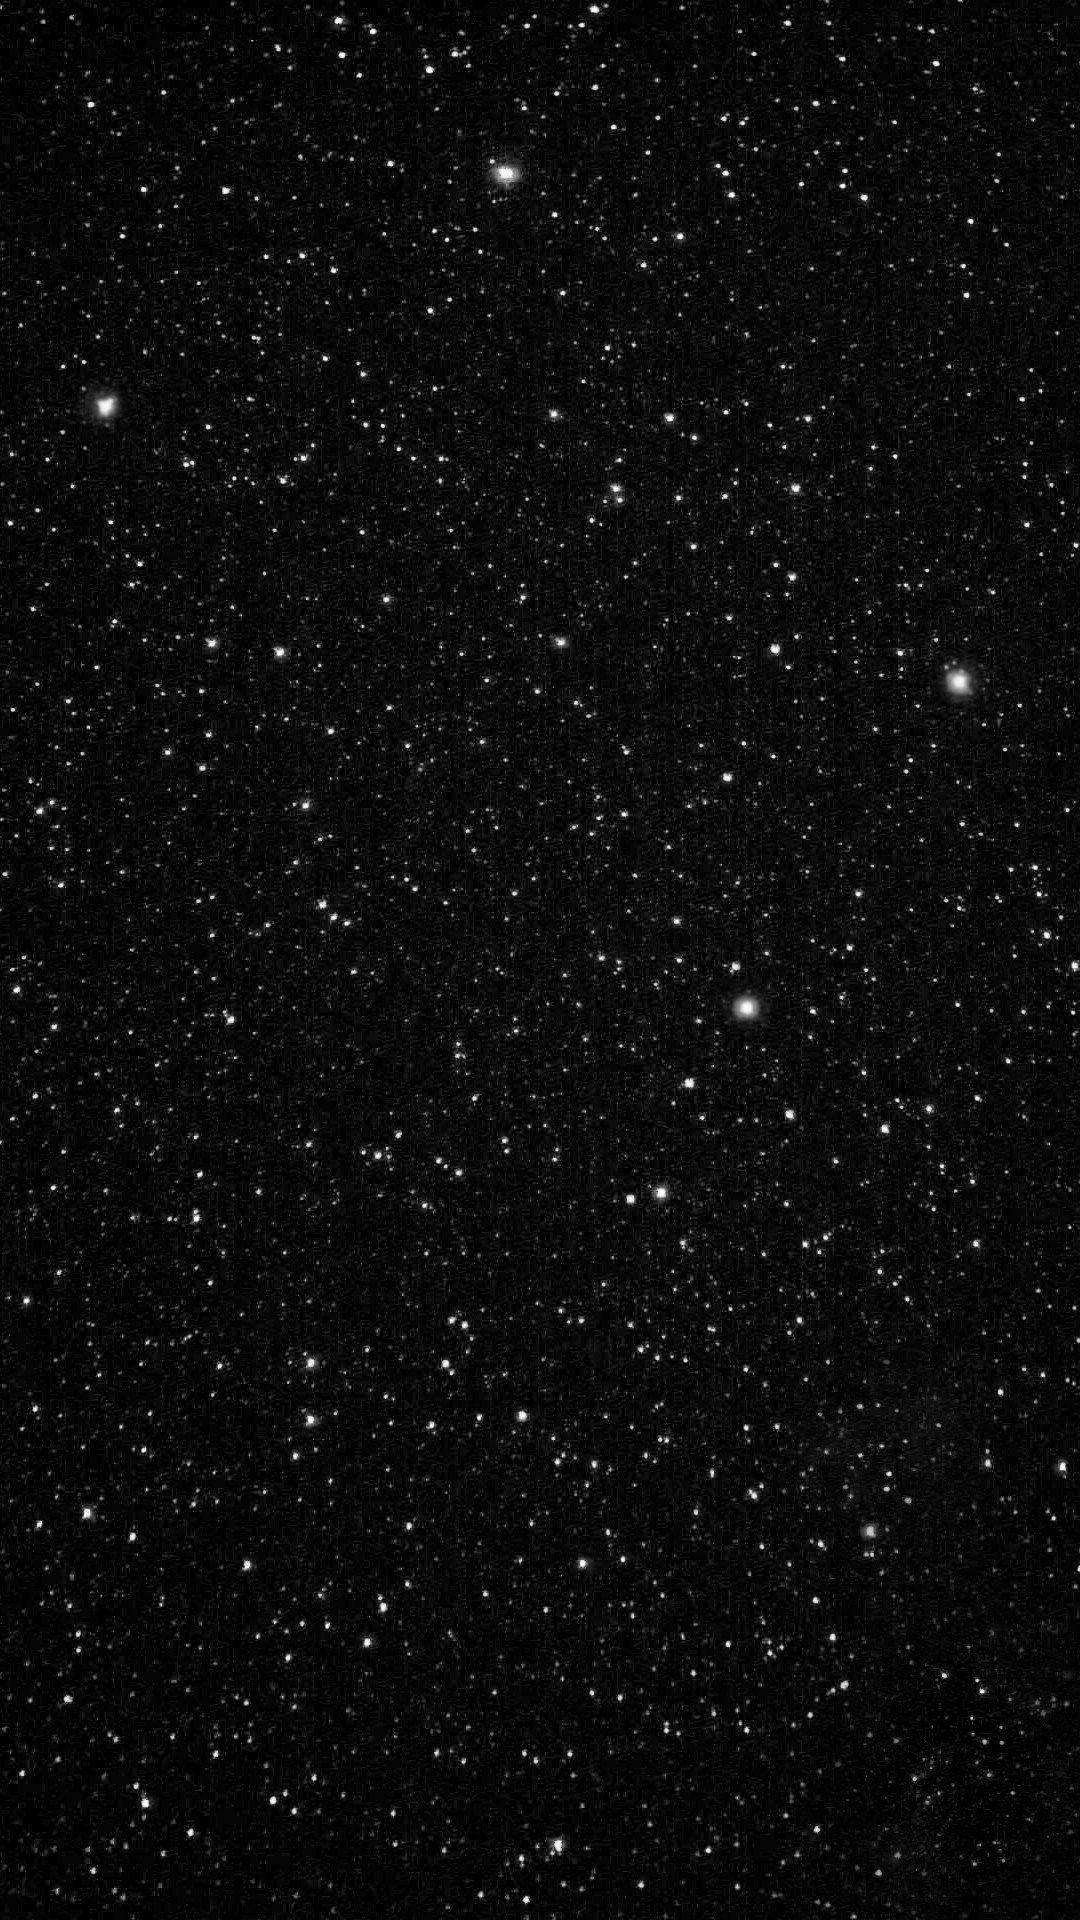 Hd Stars Wallpapers Iphone 7 And 7 Plus Jetblack For Iphone Live Wallpaper Iphone Black Wallpaper Black Wallpaper Iphone